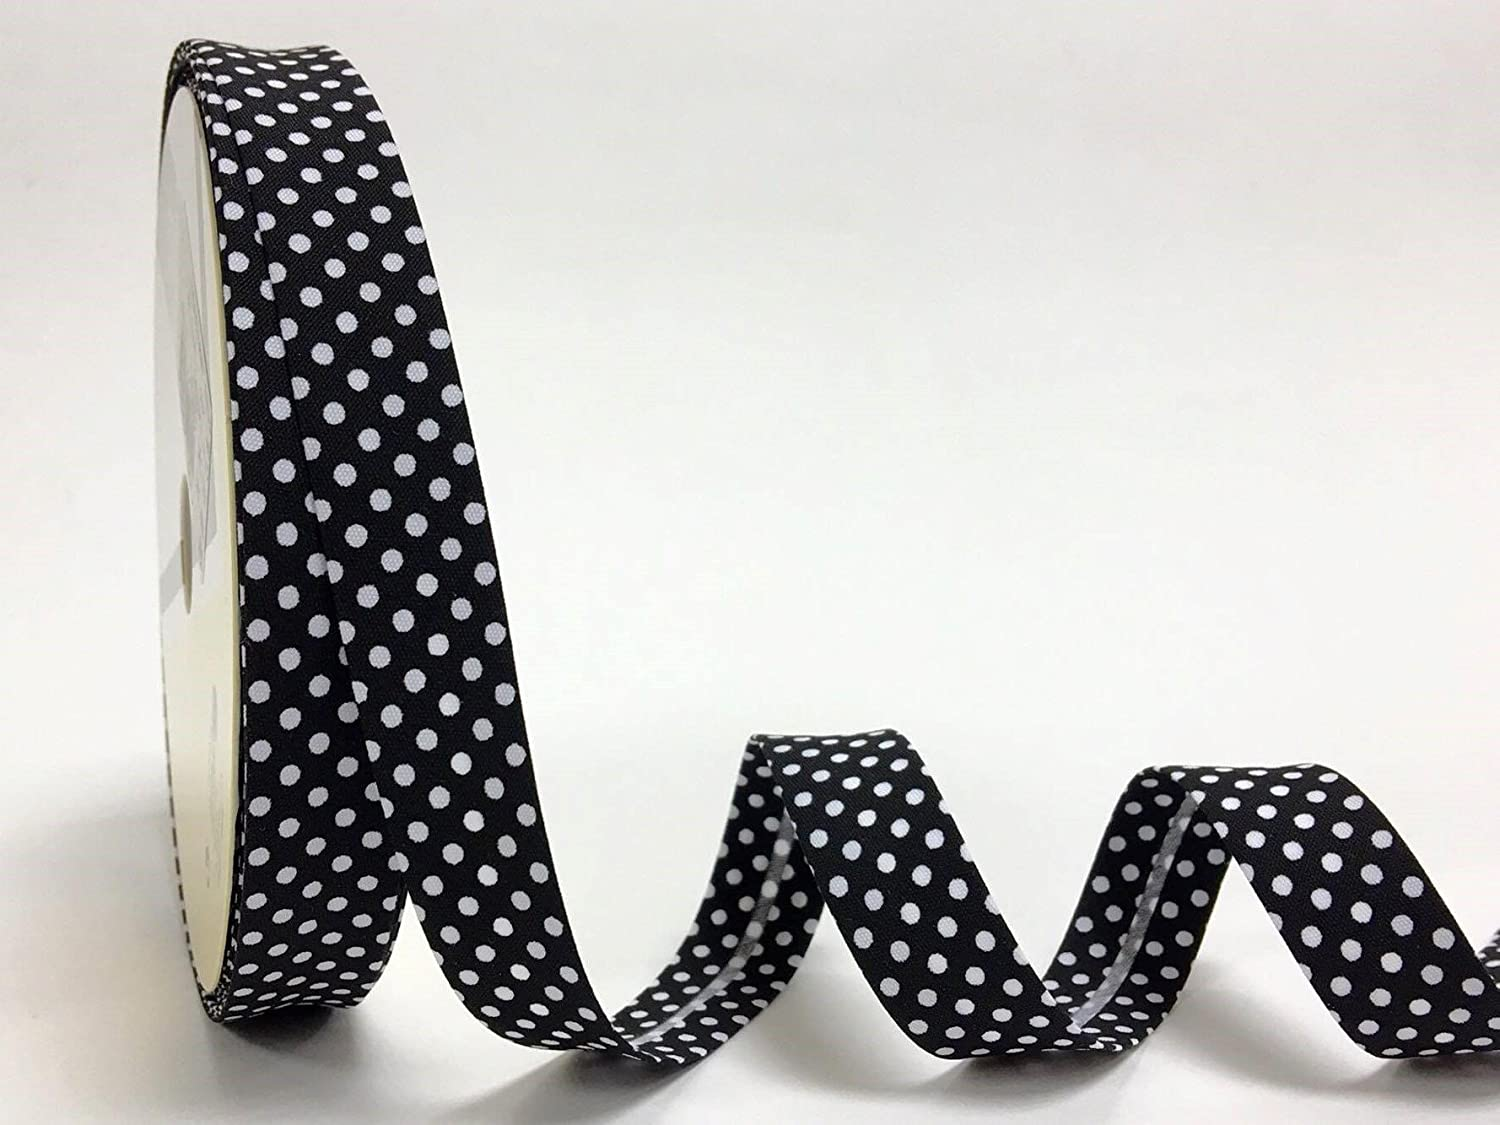 Black Polka Dot 18mm Bias Binding by Fany on a 3m Length (N.B. this is a cut from a roll) 7480-1-3m